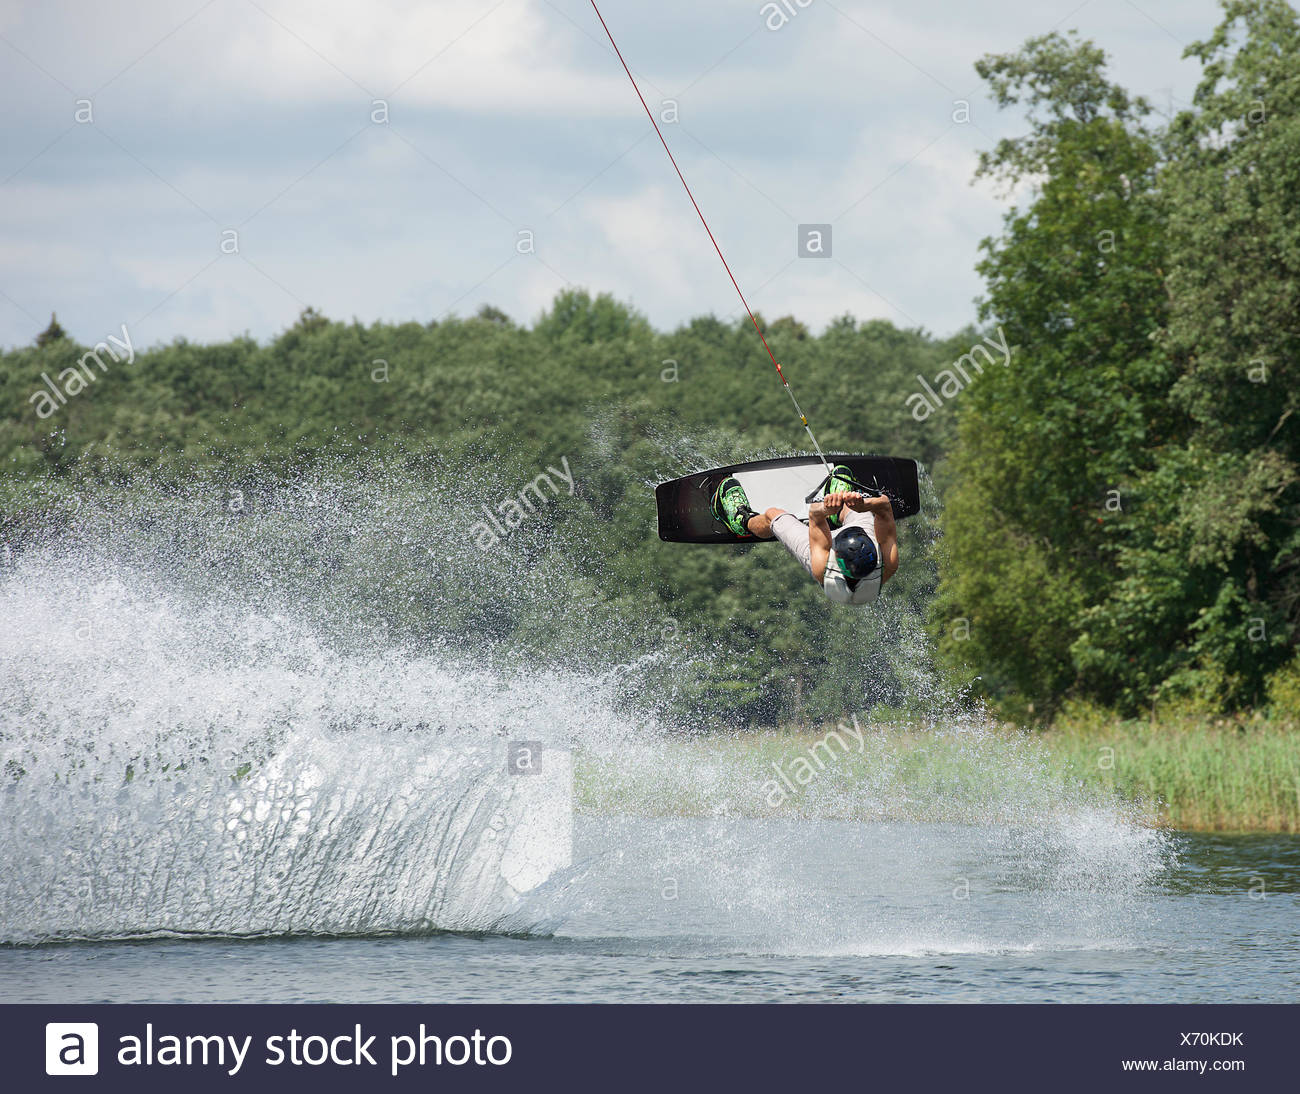 Man wakeboarding on a lake, Lithuania - Stock Image